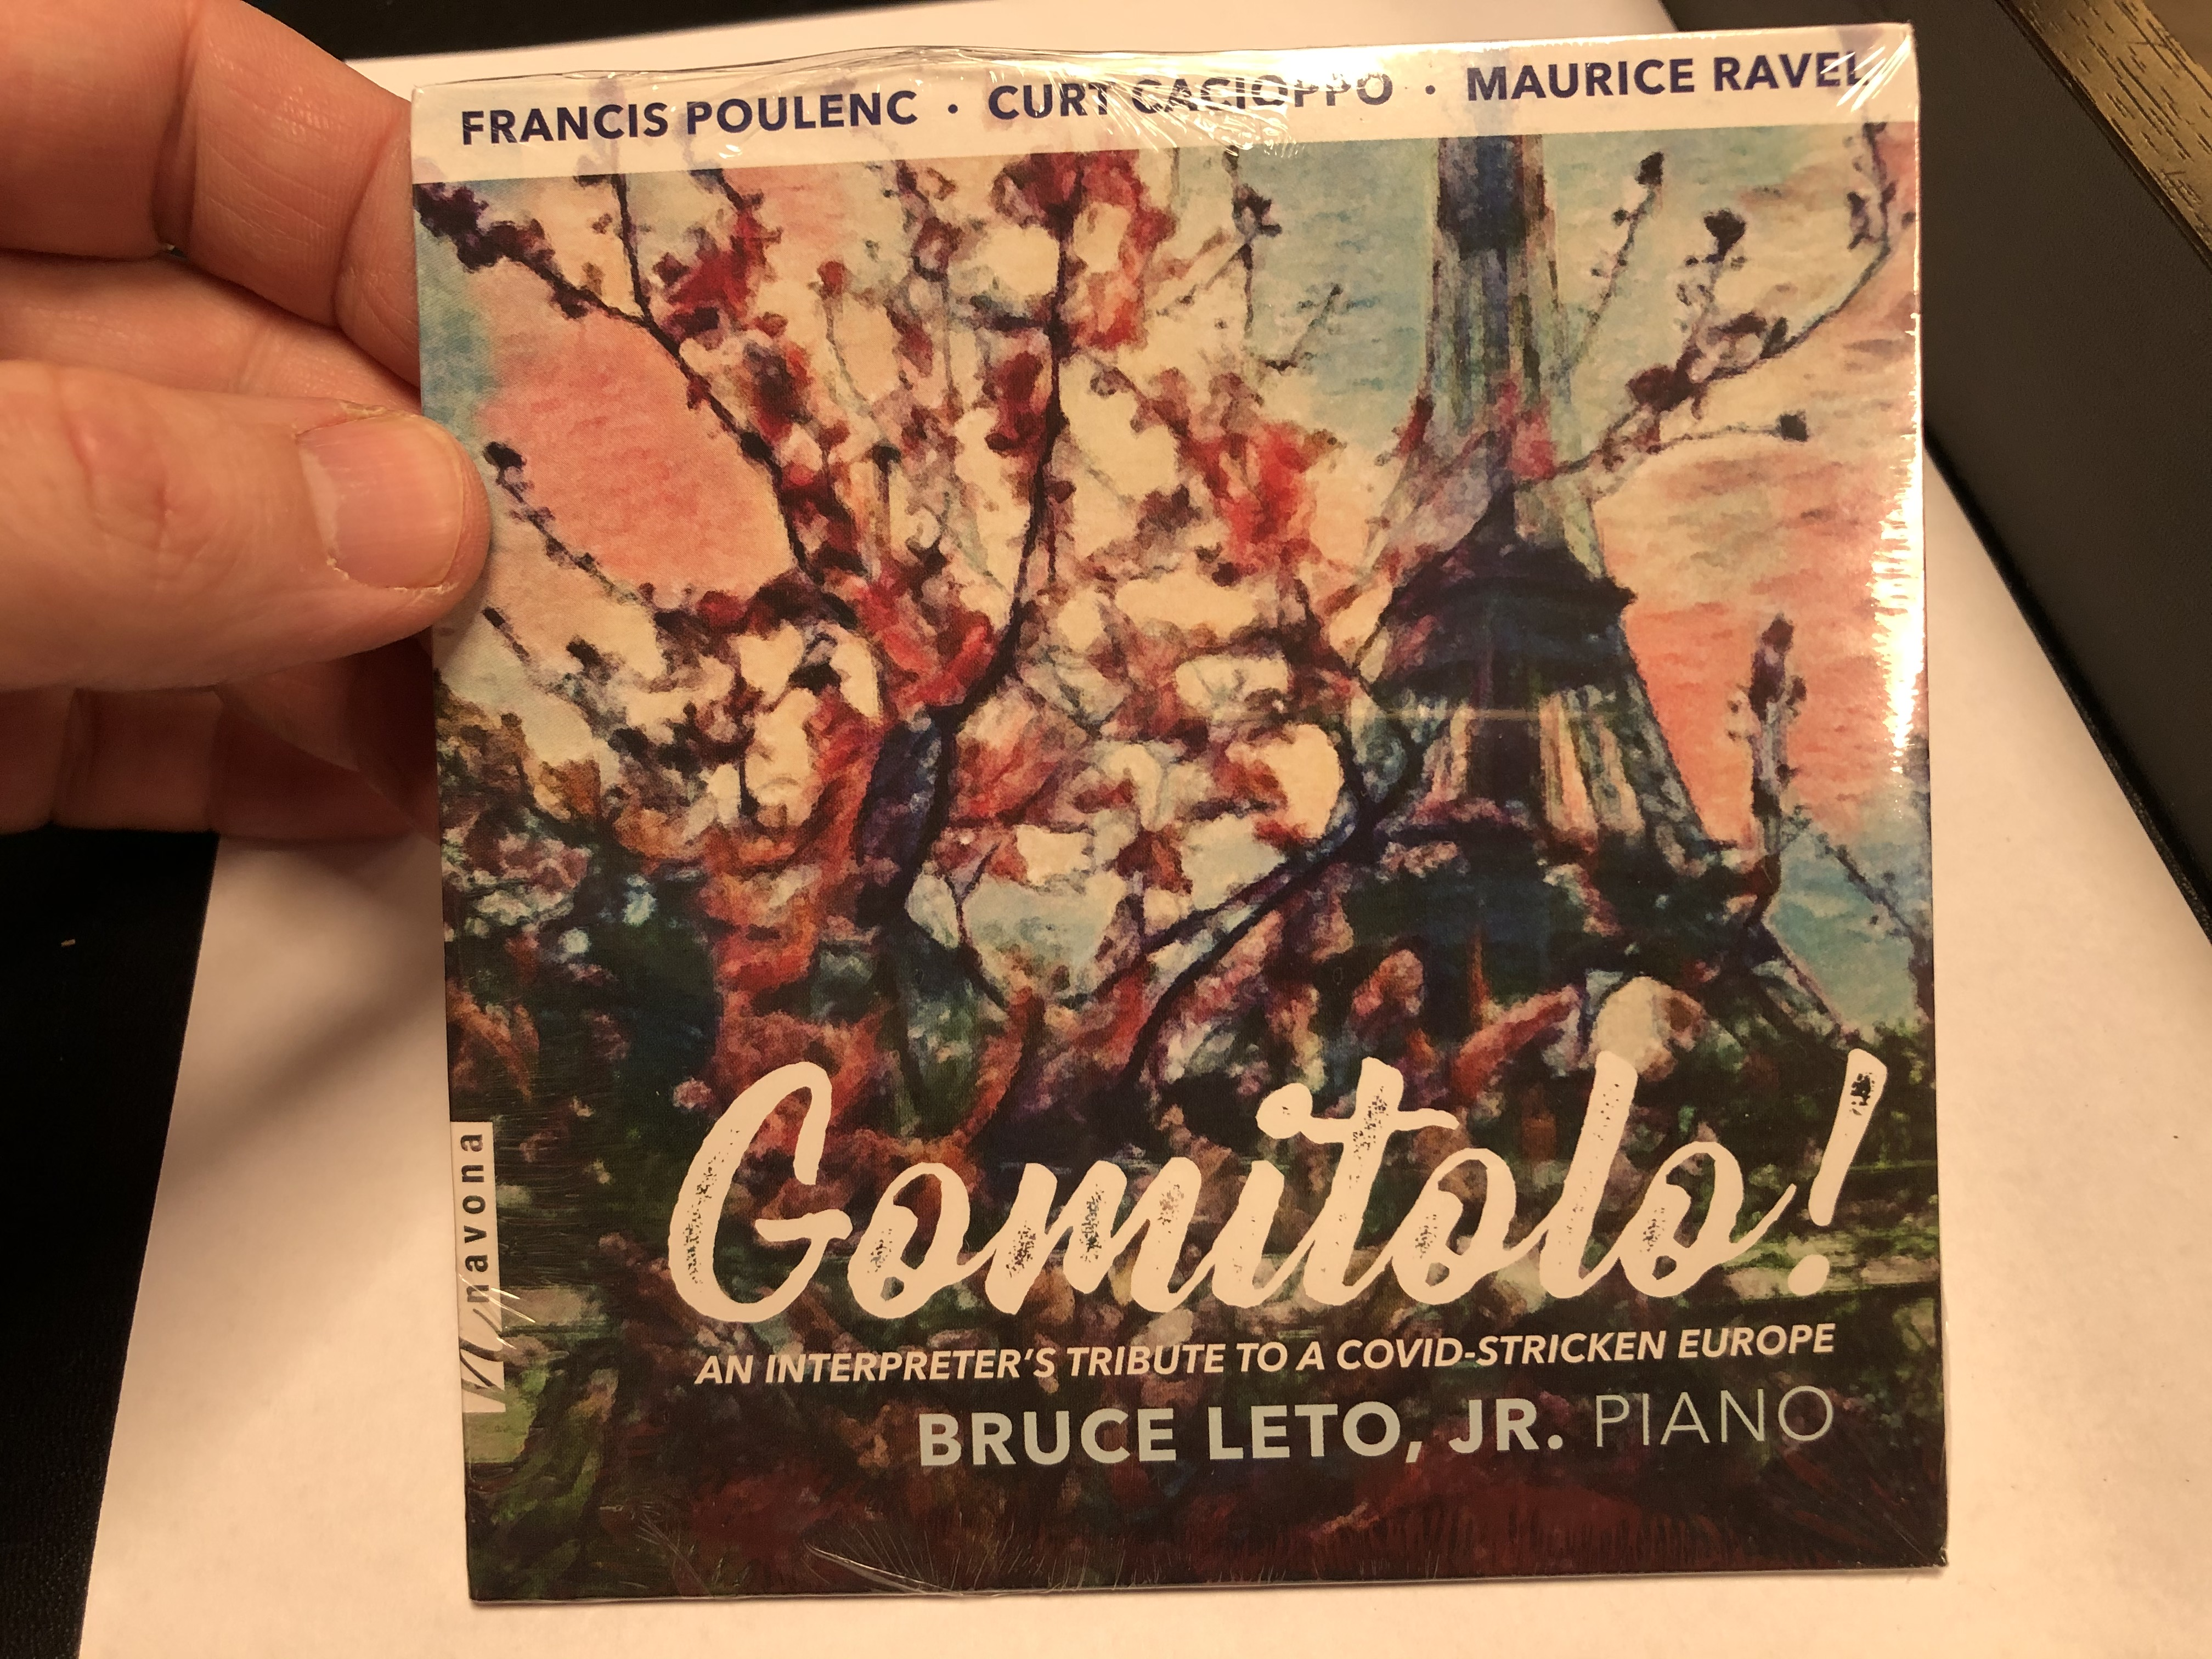 francis-poulenc-curt-cacioppo-maurice-ravel-gomitolo-an-interpreter-s-tribute-to-a-covid-stricken-europe-bruce-leto-jr.-piano-navona-records-audio-cd-2020-nv6308-1-.jpg